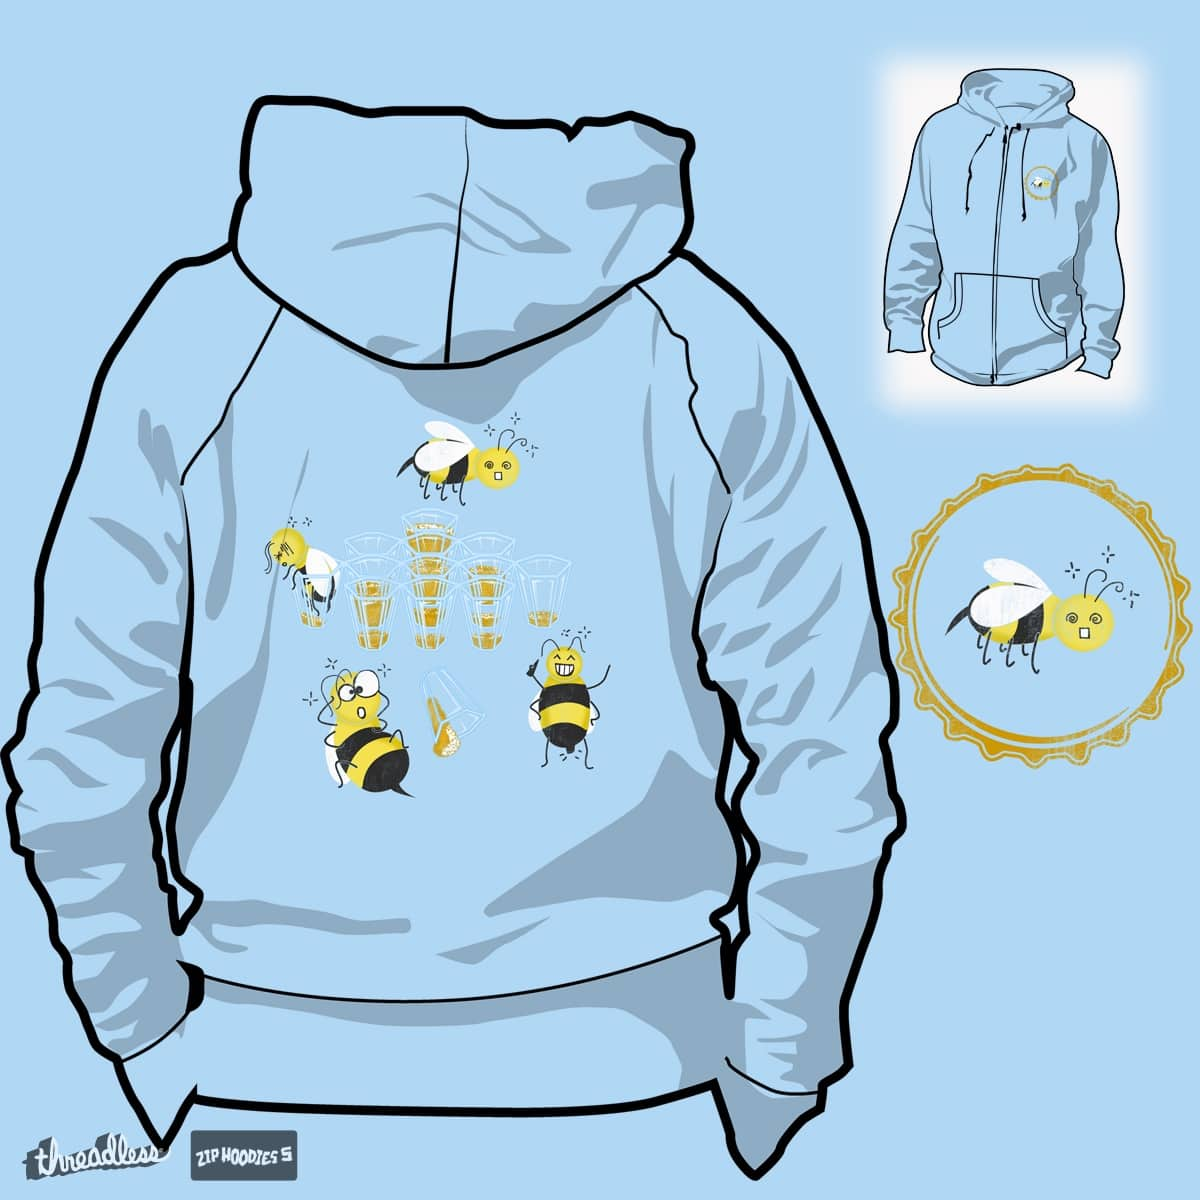 Bzzz Hik! by papaomaangas on Threadless